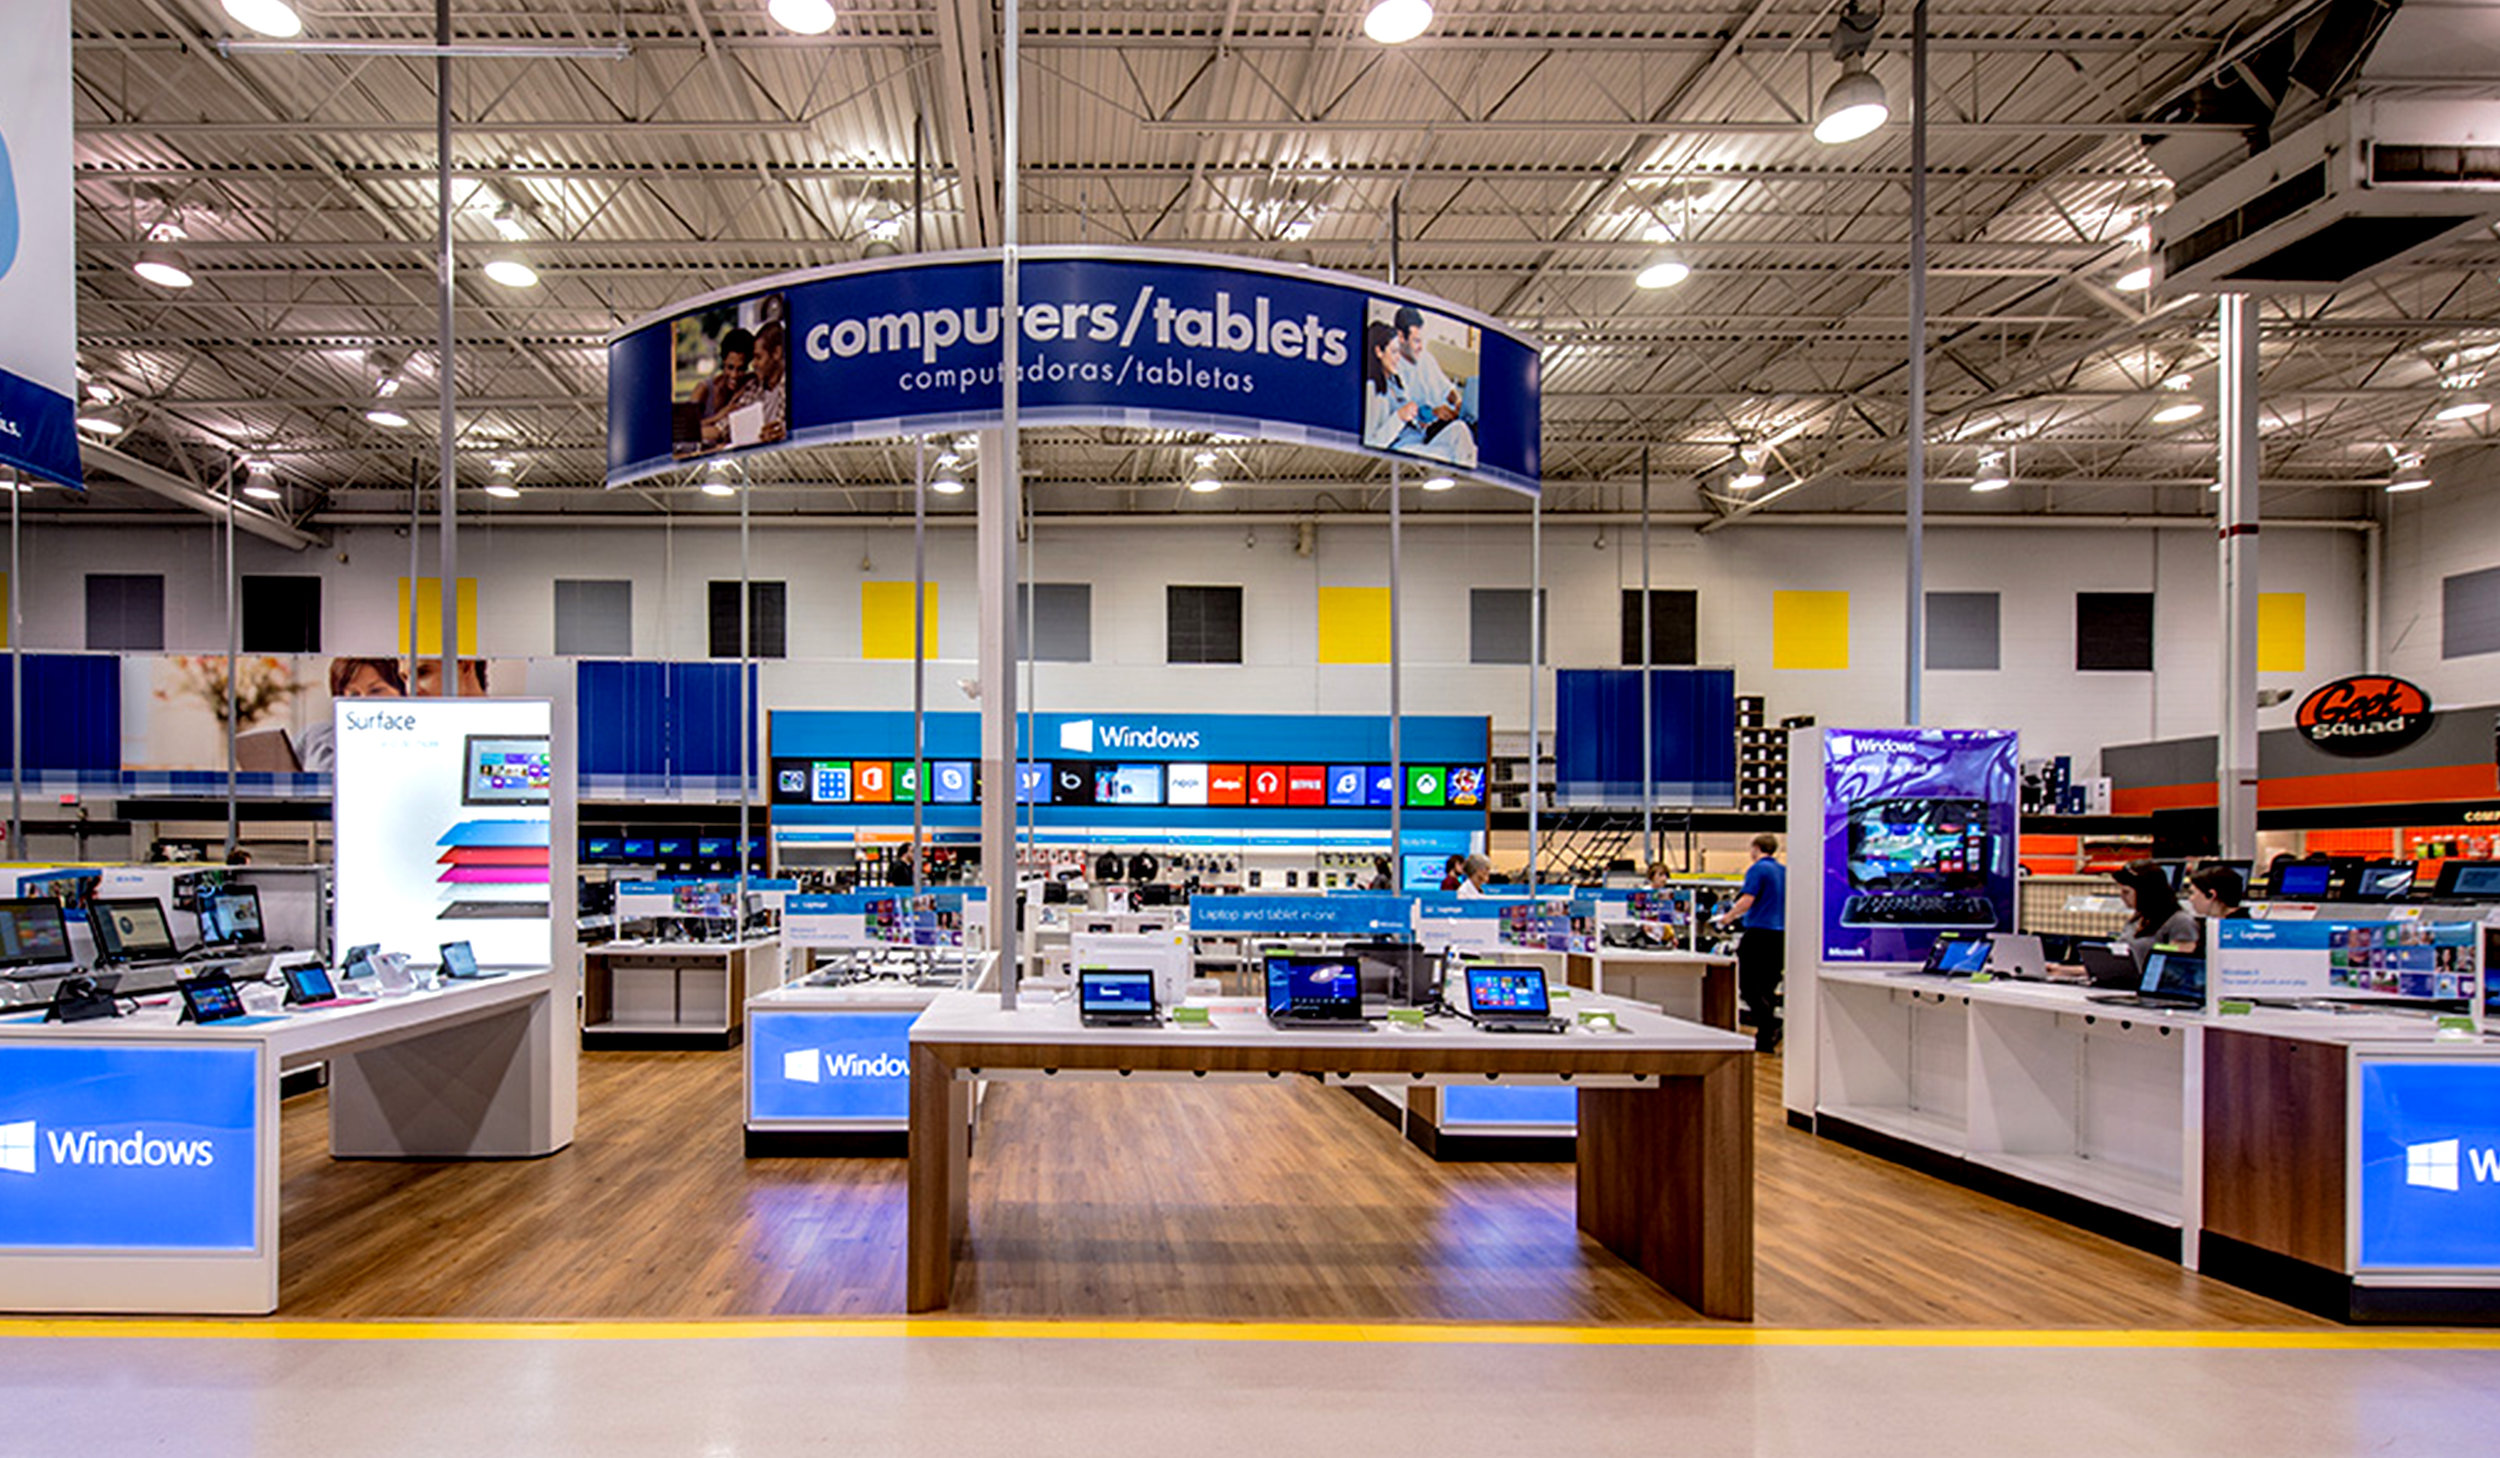 Windows Retail Store at Best Buy - ImagiCorps designed, engineered, fabricated, printed, fulfilled and transported each full kit direct to store.